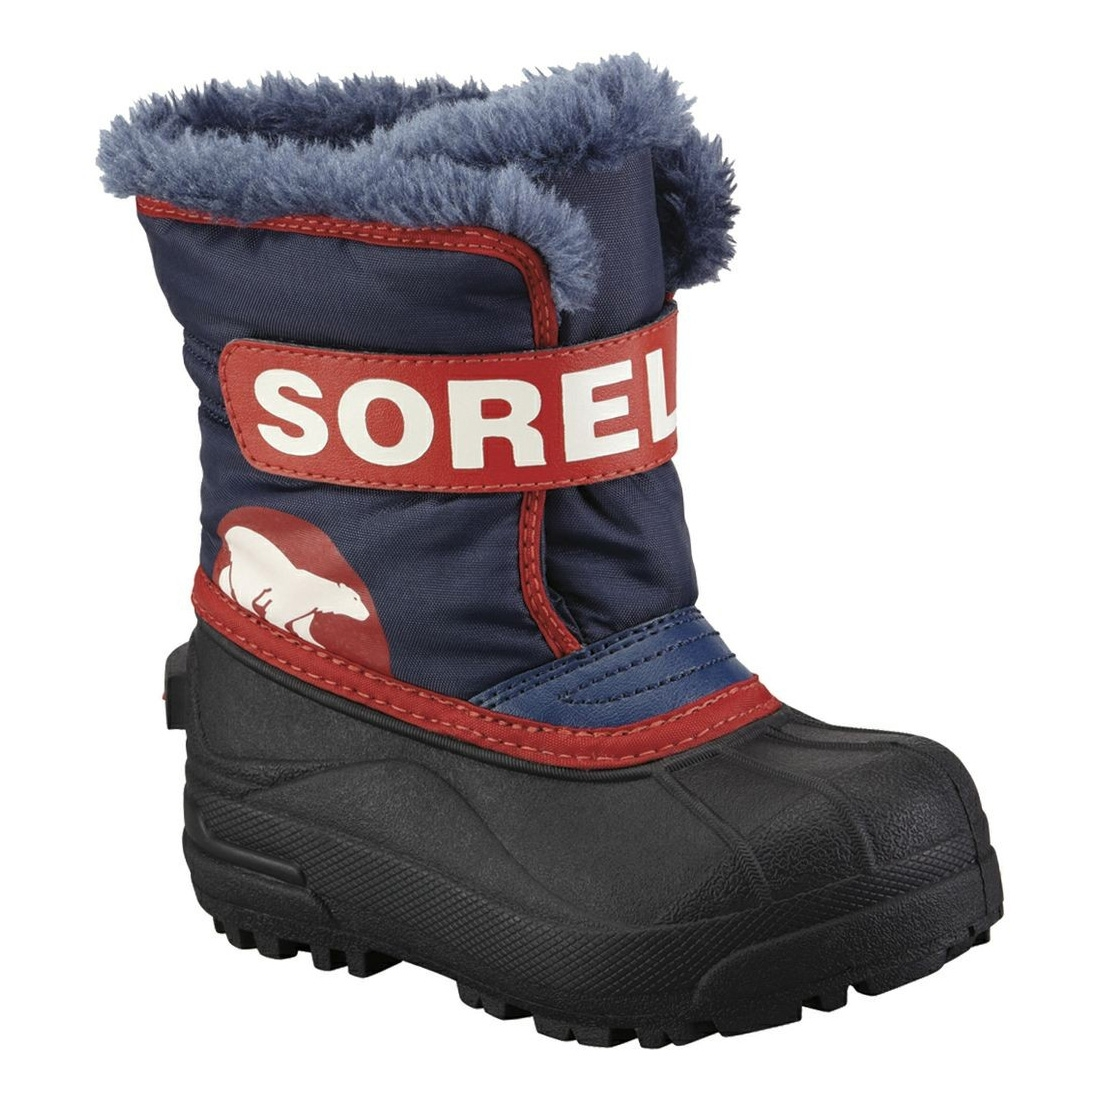 7ac77747cdd Image of Sorel Children s Snow Commander Boots - Nocturnal   Sail Red